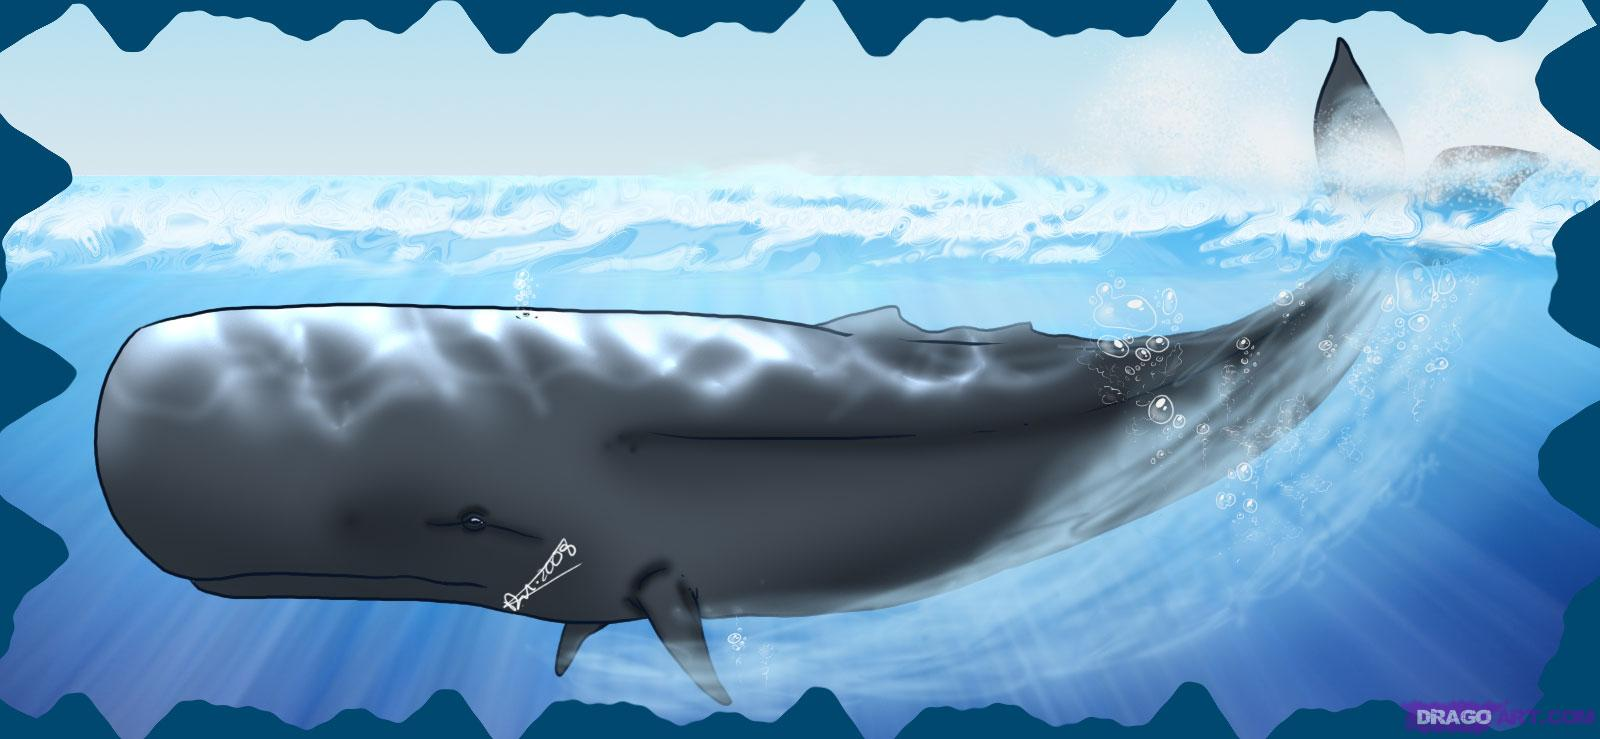 Drawn whale humongous Sperm by a Animals how